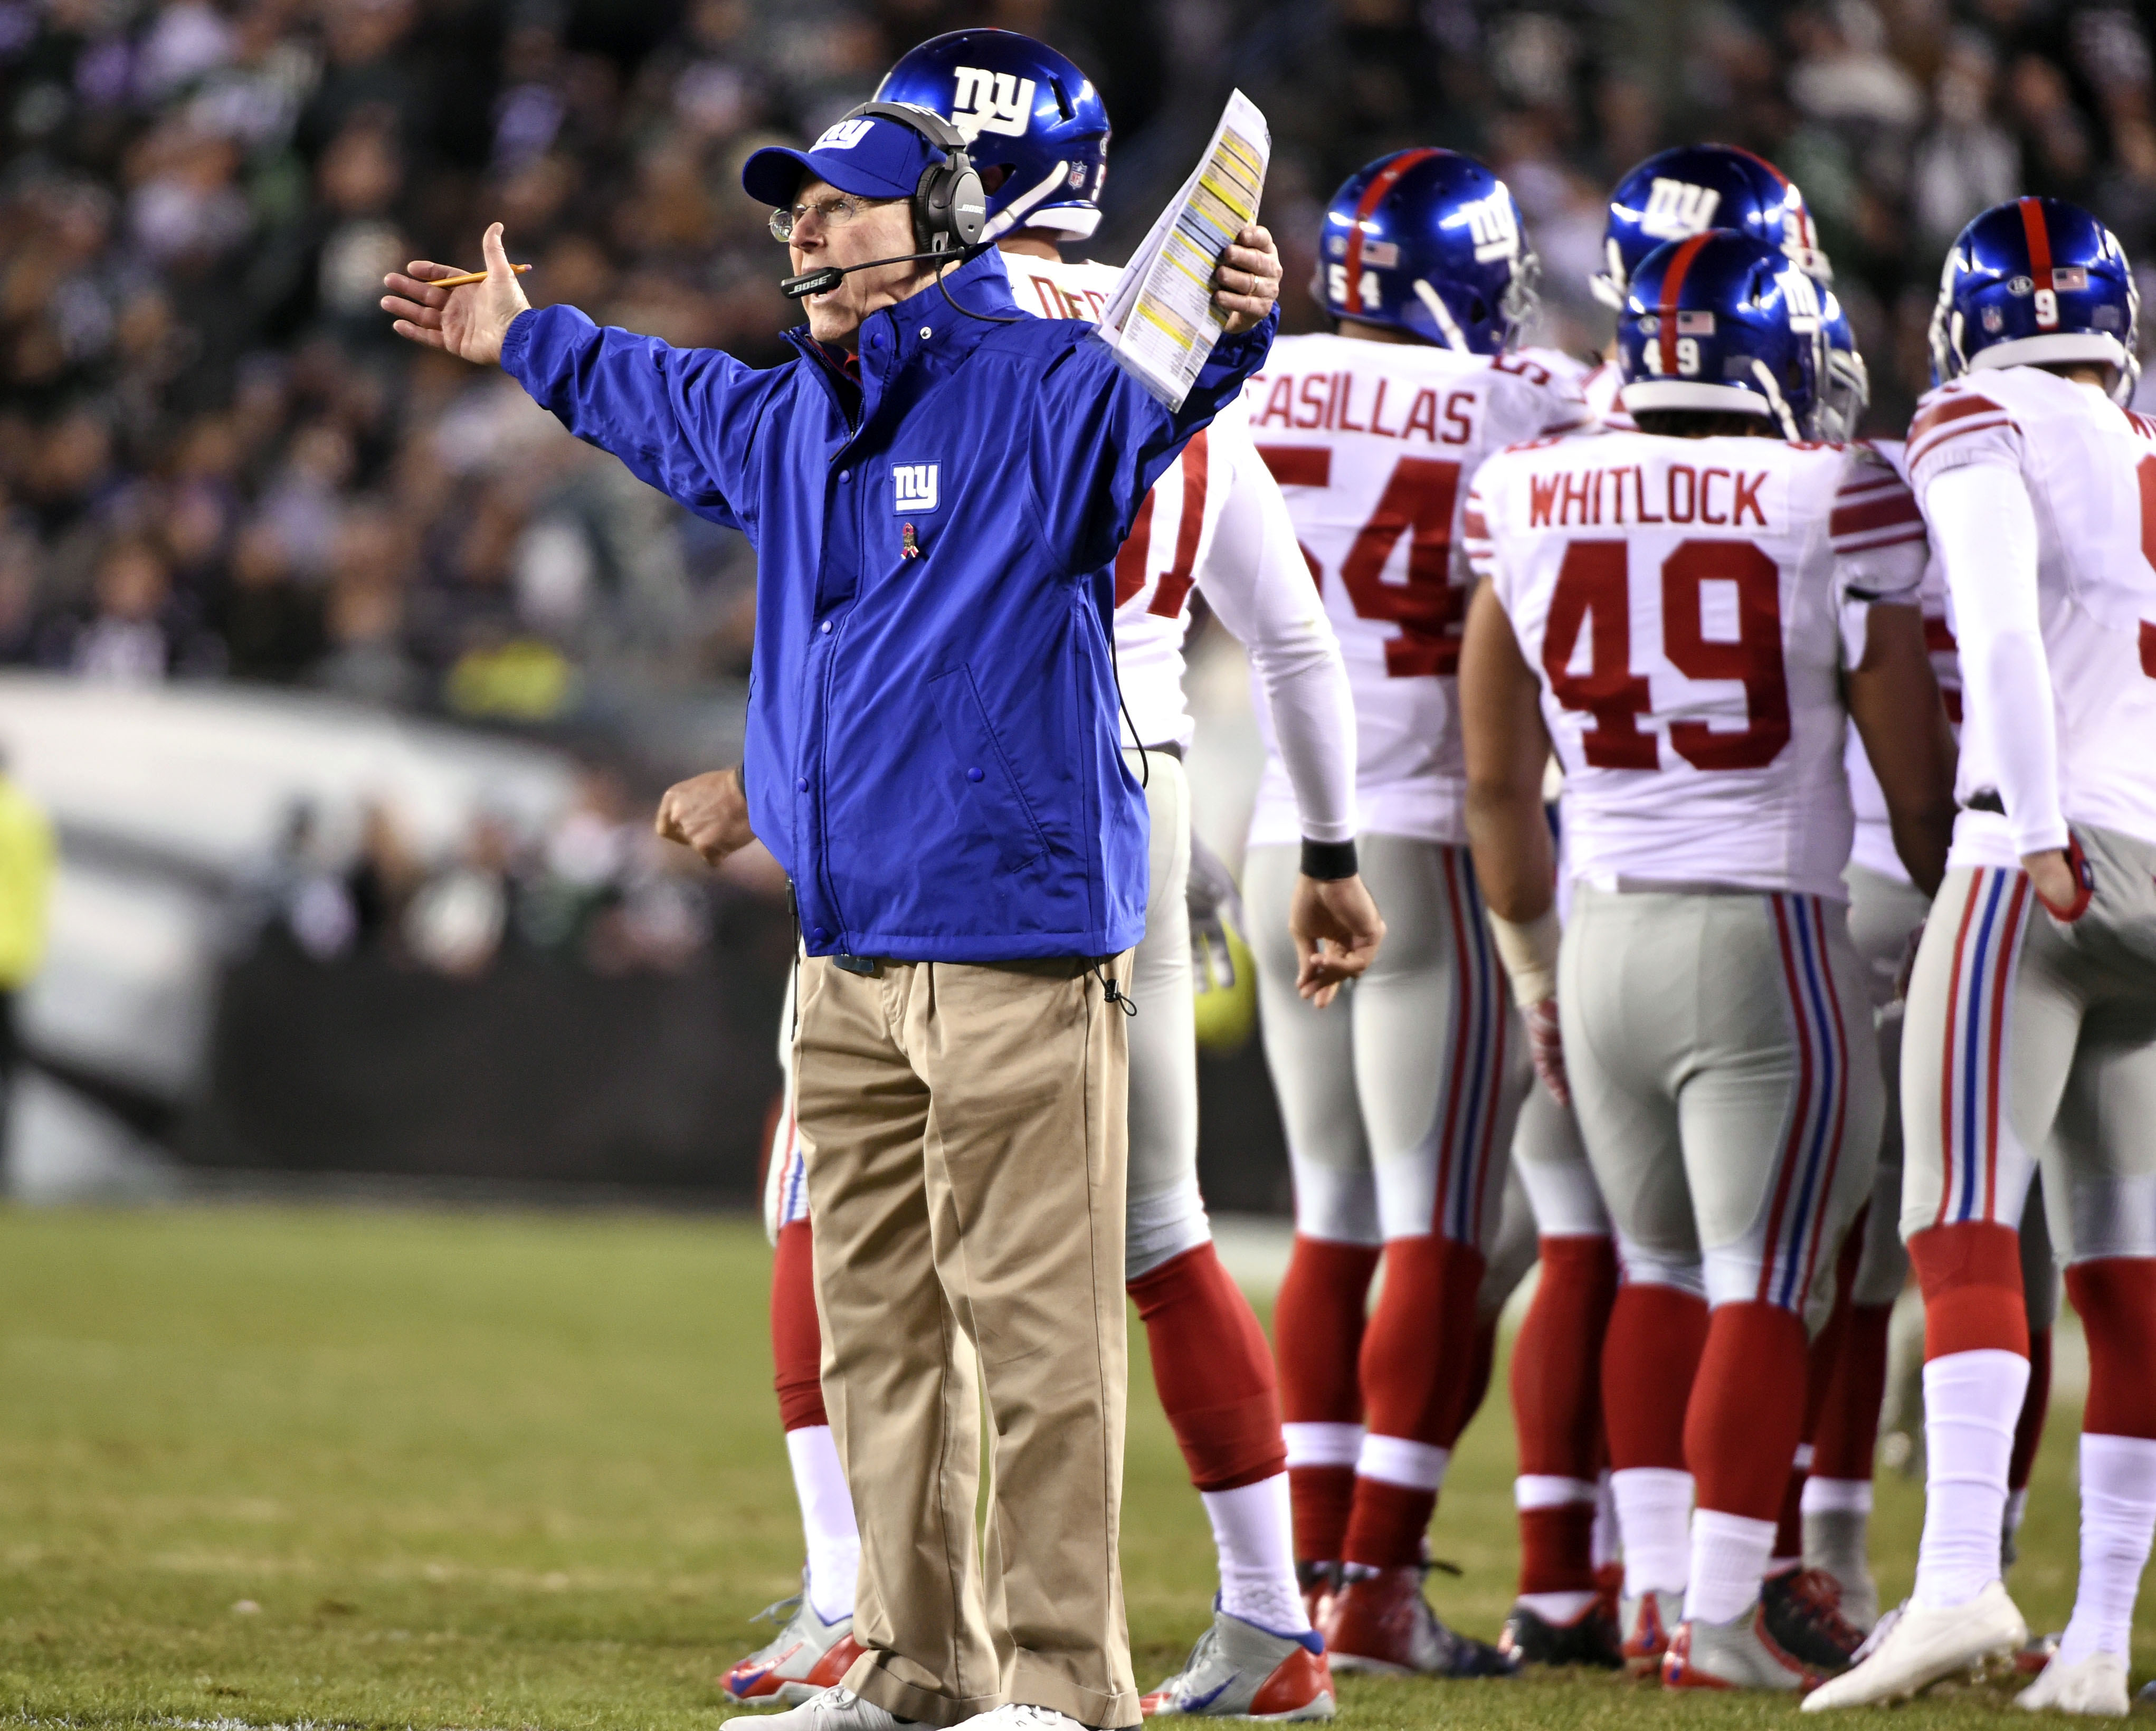 This Tom Coughlin pose is much too familiar